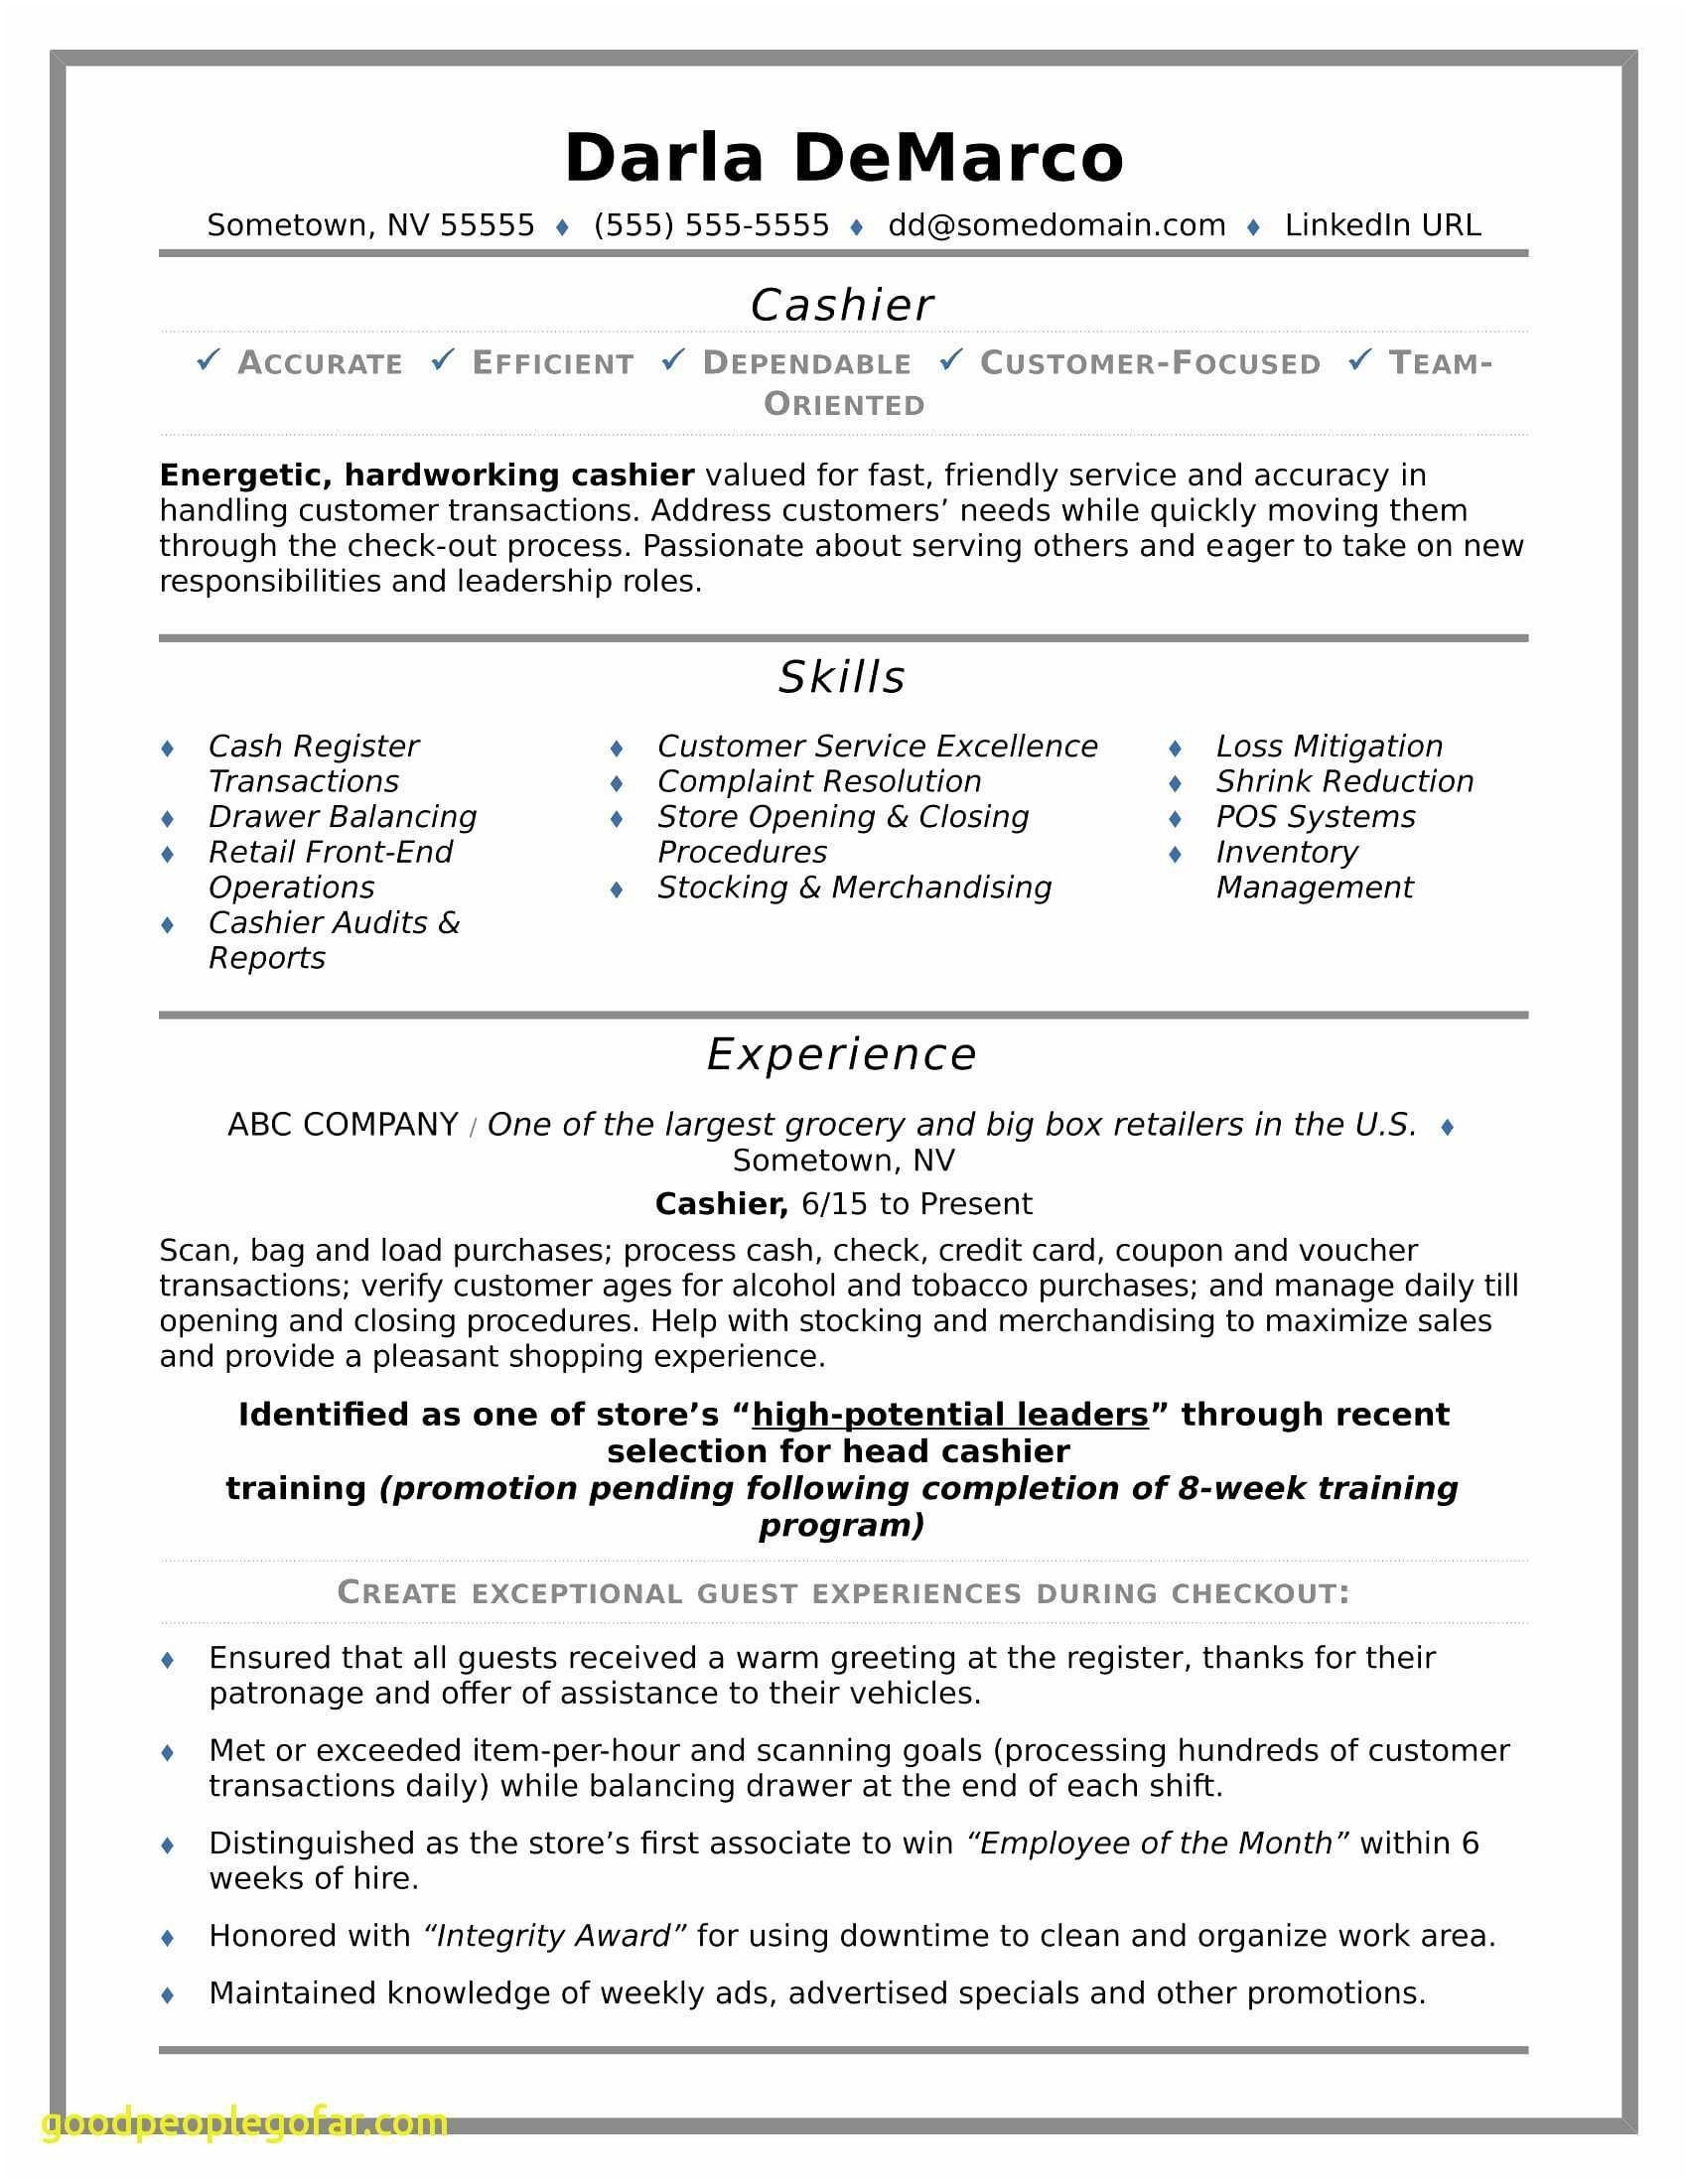 mini resume template example-Hand Out Templates Unique Basic Resume Template Luxury Resume Pdf 0d Minifridgewithlock 15-e